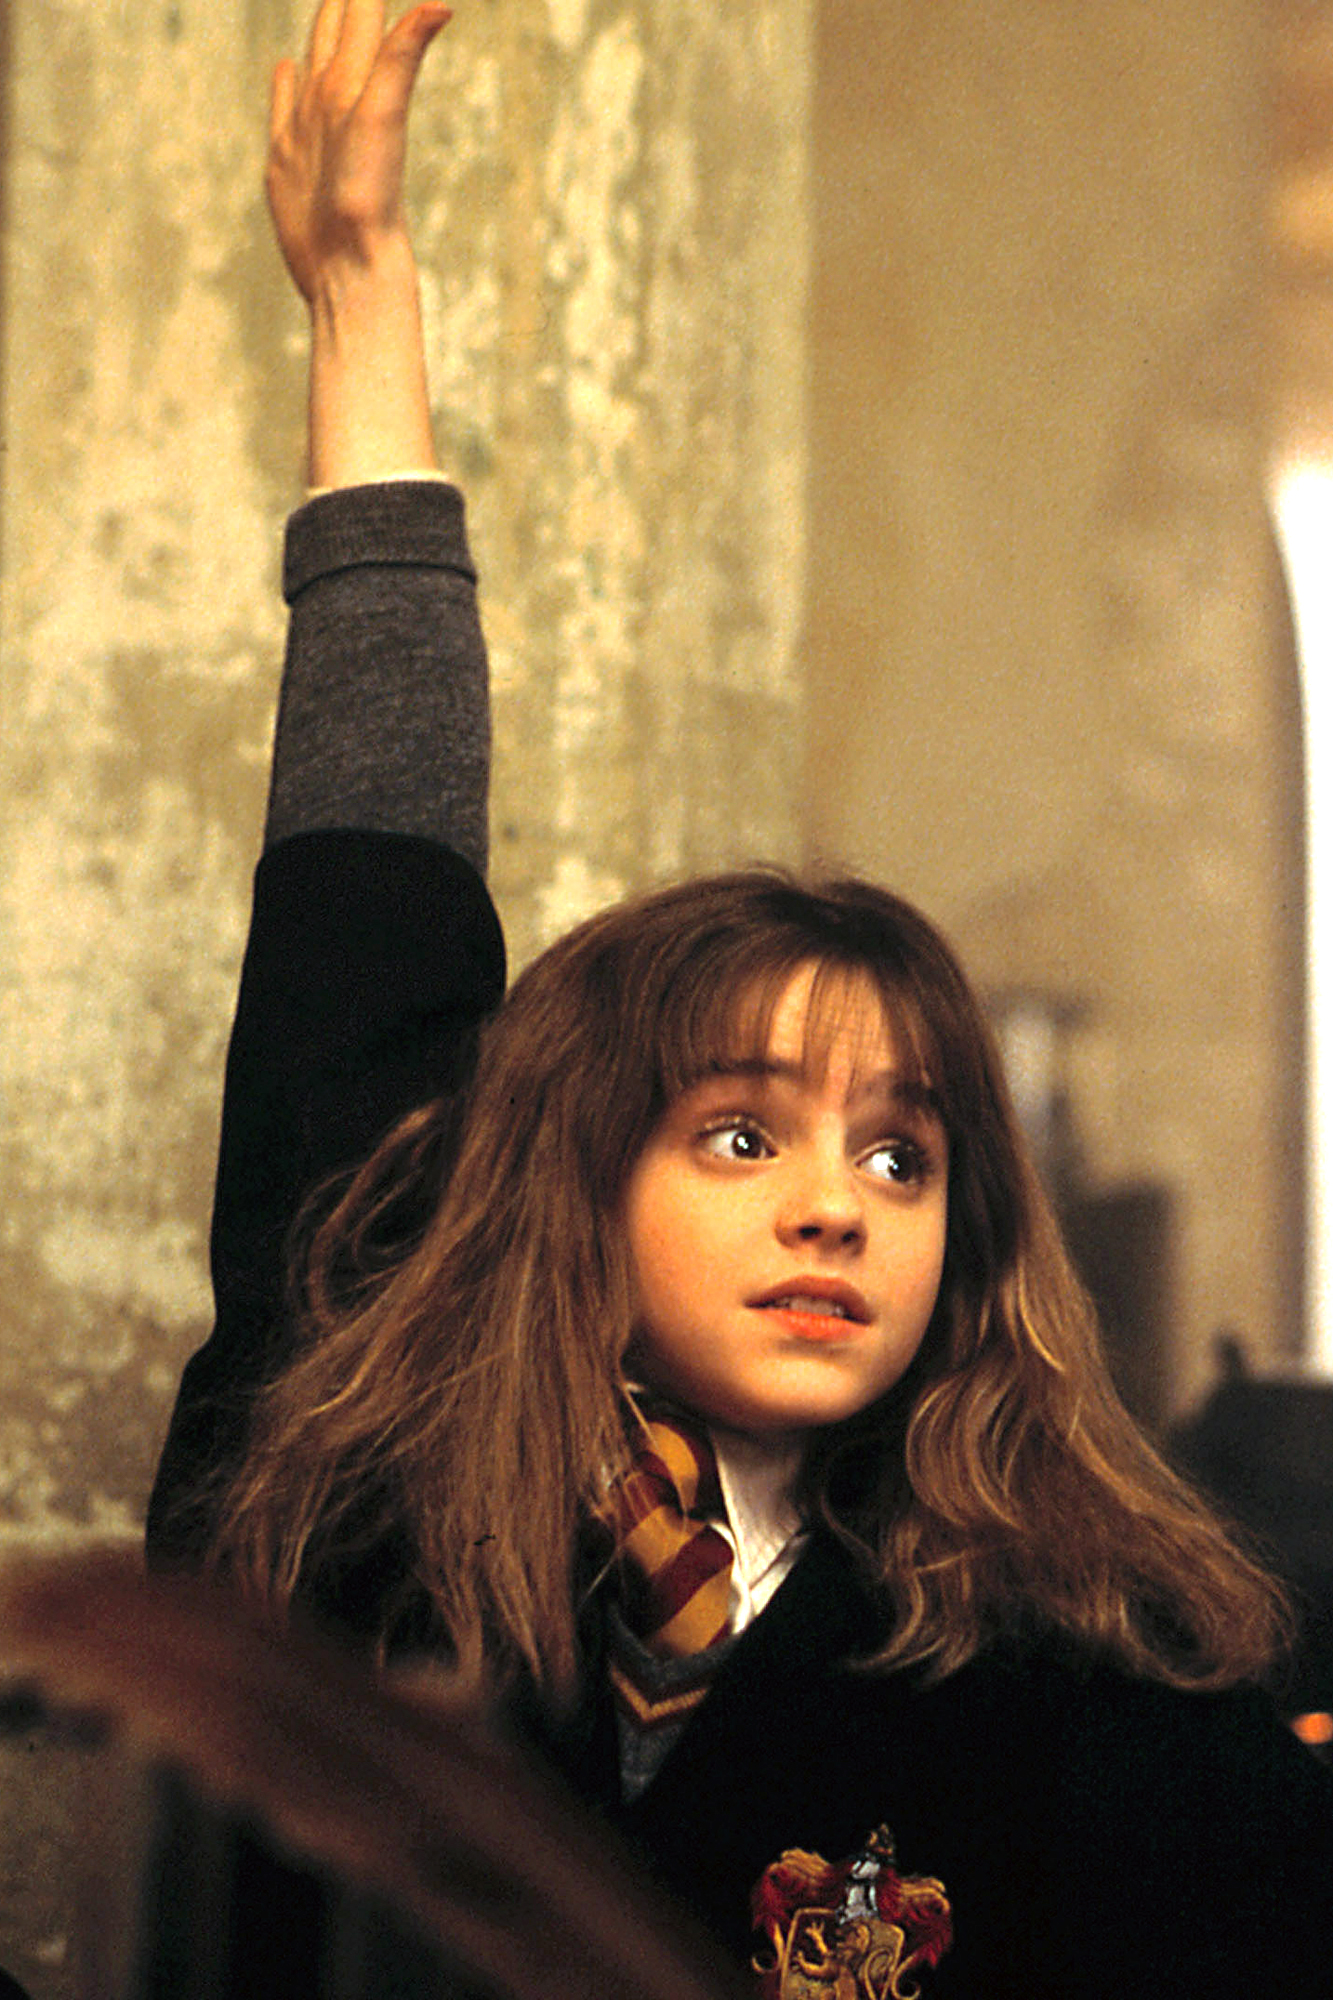 HARRY POTTER AND THE SORCERER'S STONE, Emma Watson as Hermione Granger, in class at Hogwarts, 2001